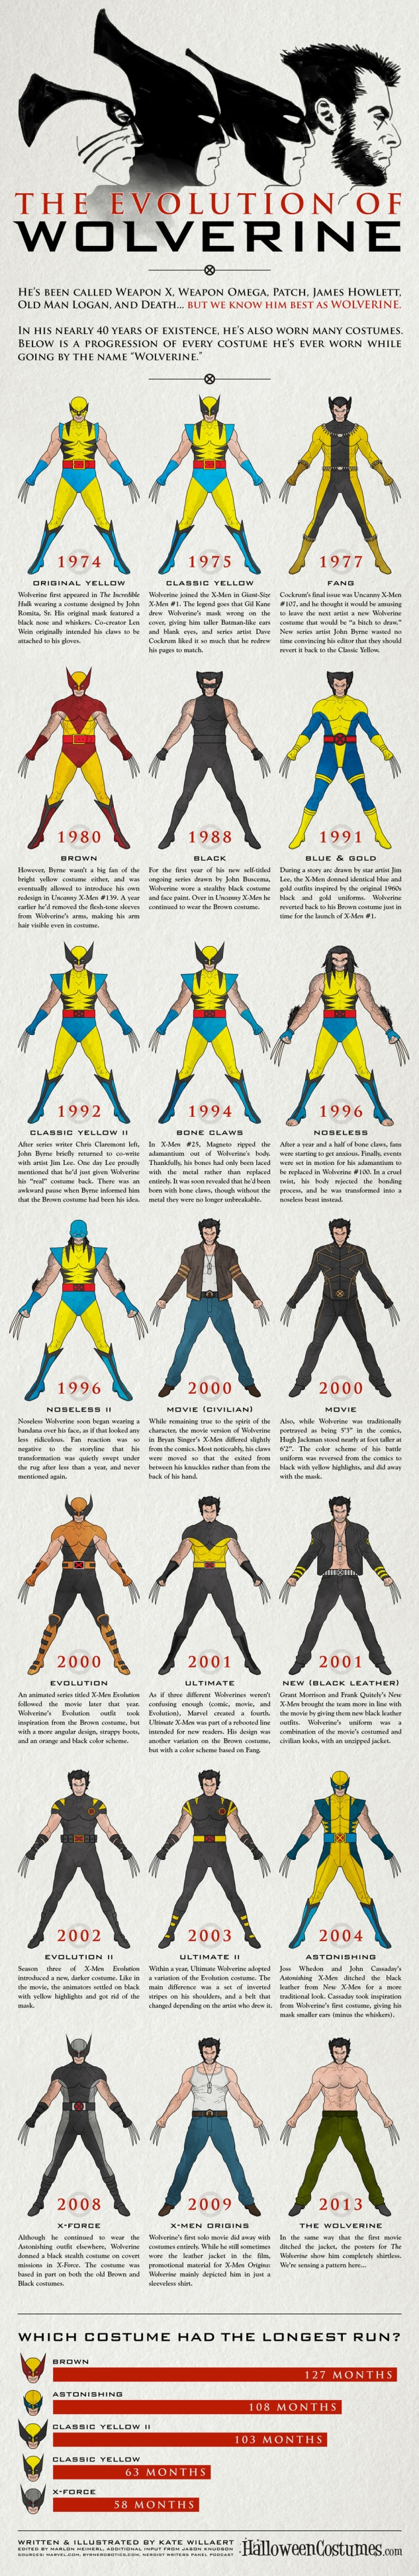 evolution-of-wolverine